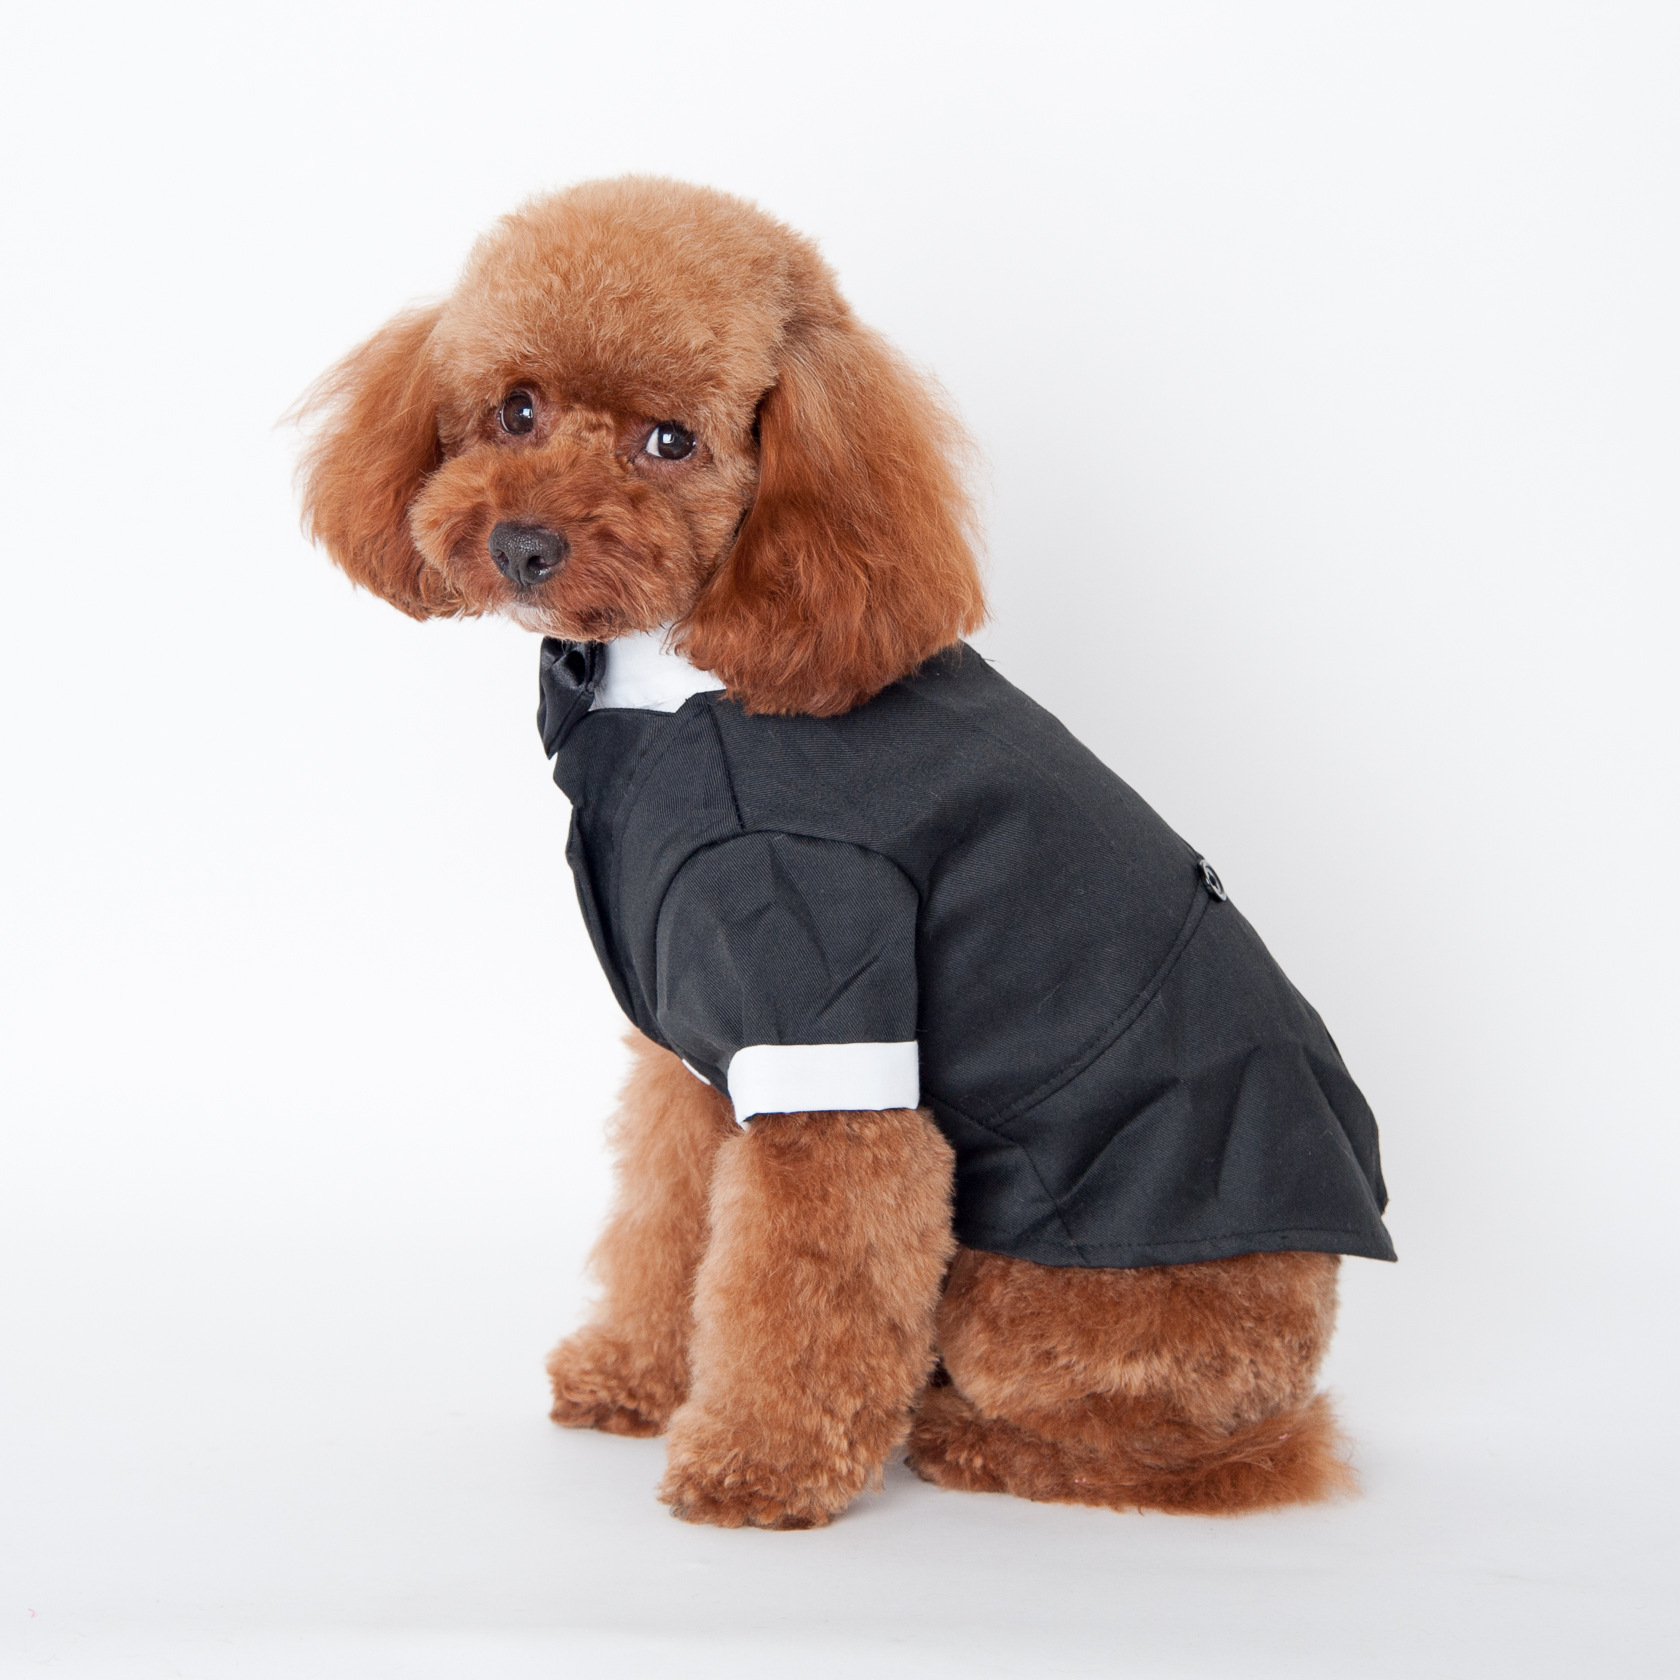 Boy Dog Suit Wedding Costume Male Dog Clothes Tuxedo Pet Clothing